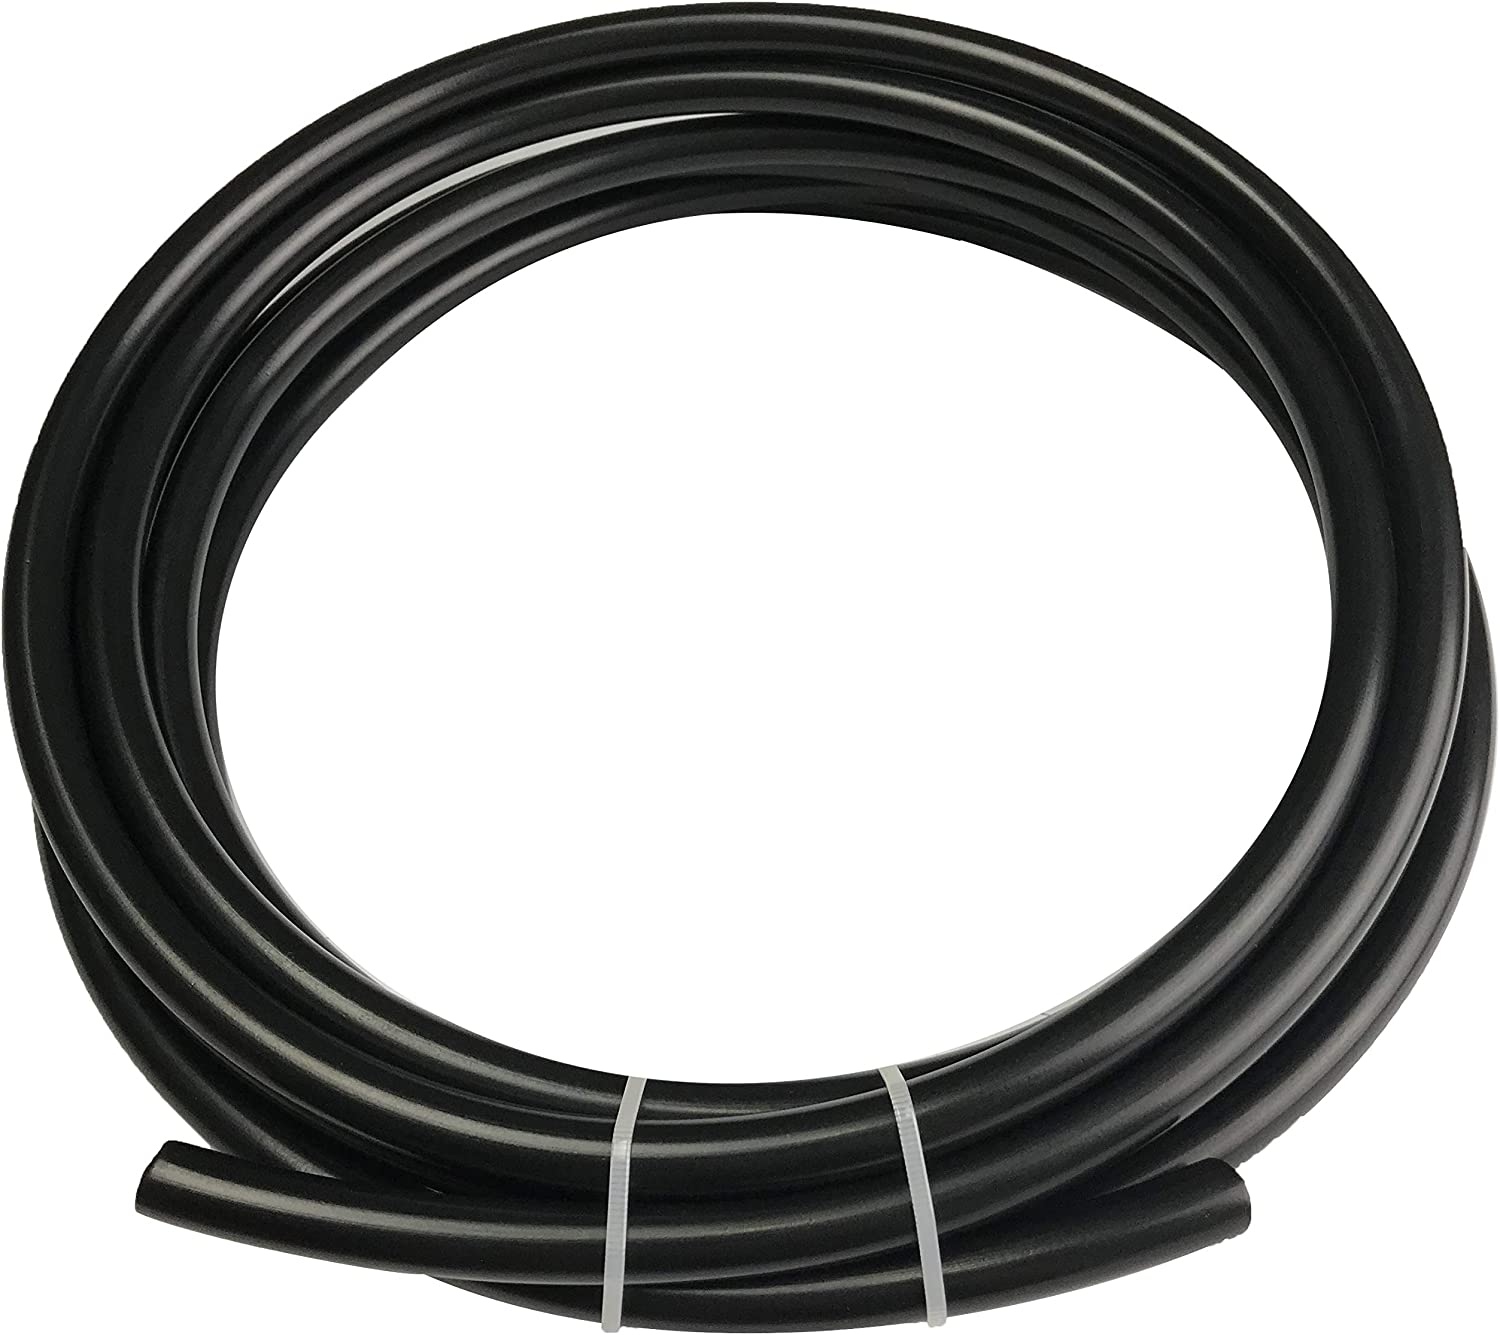 Fuel Line Nylon Tubing 5/16 ID Hose 3/8 OD Pneumatic Tube for for Air Brake System Or Fluid Transfer Black, 10 feet